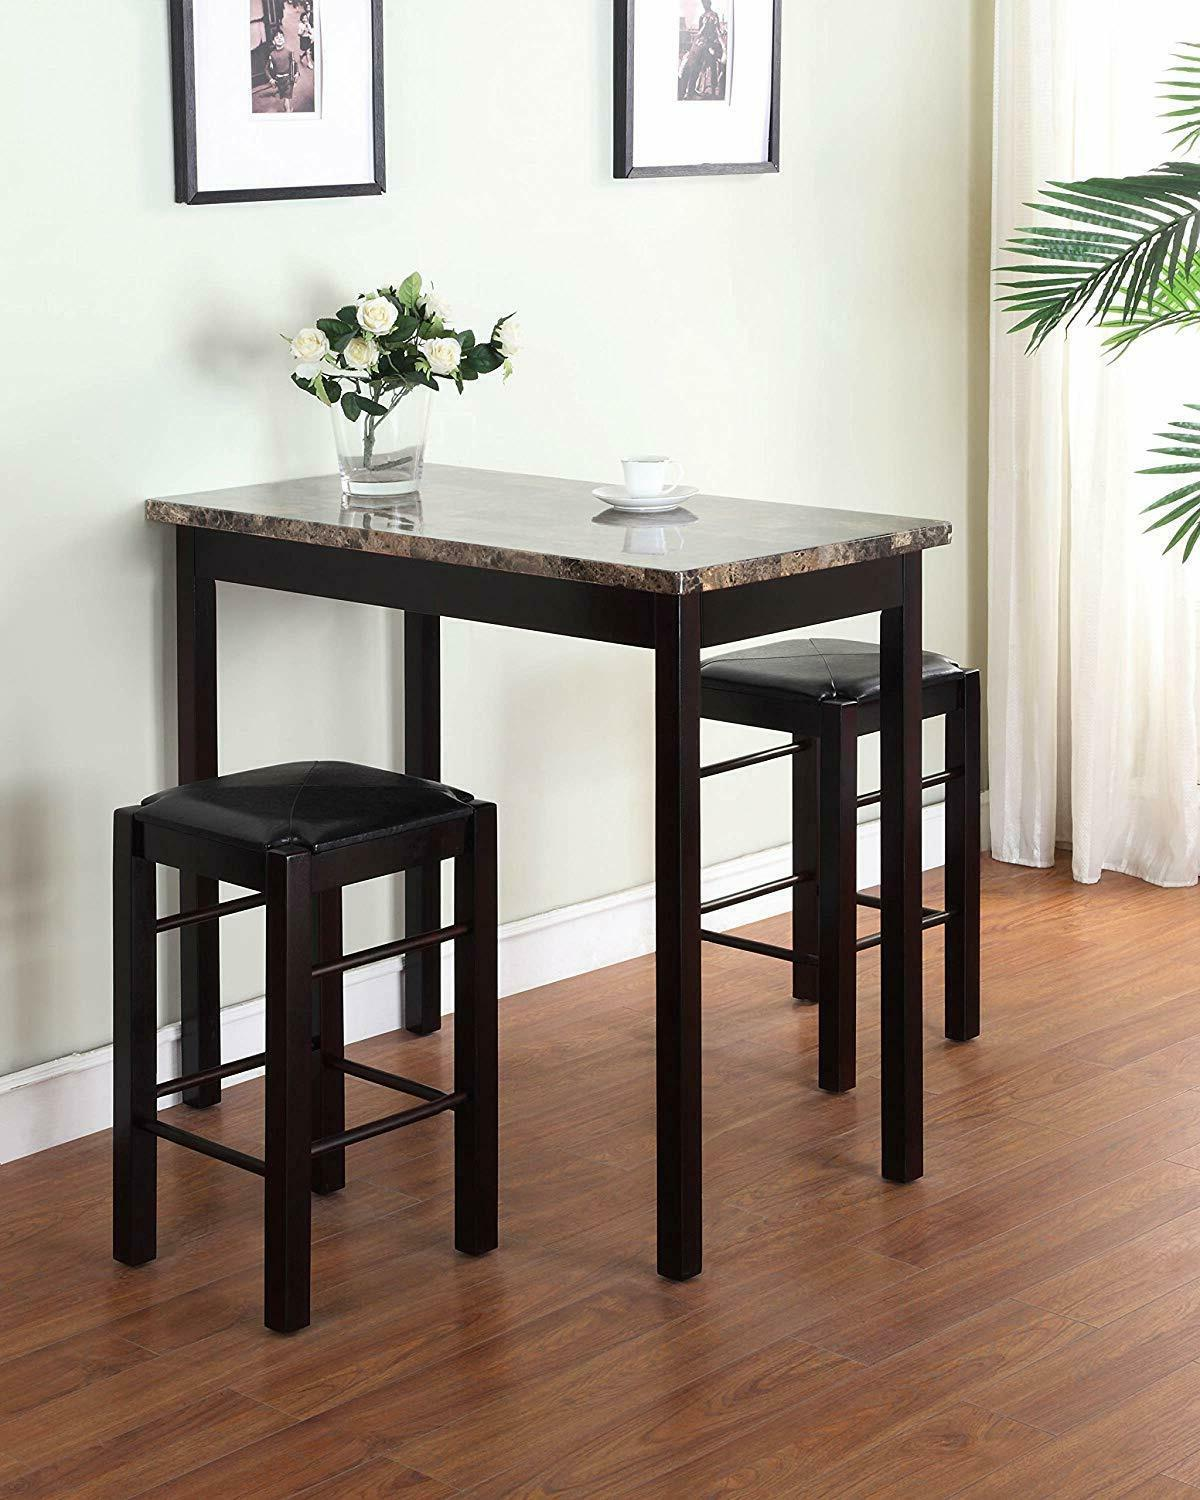 Pub Table Set 3 Piece Small Kitchen Chairs 2 High Top Stools